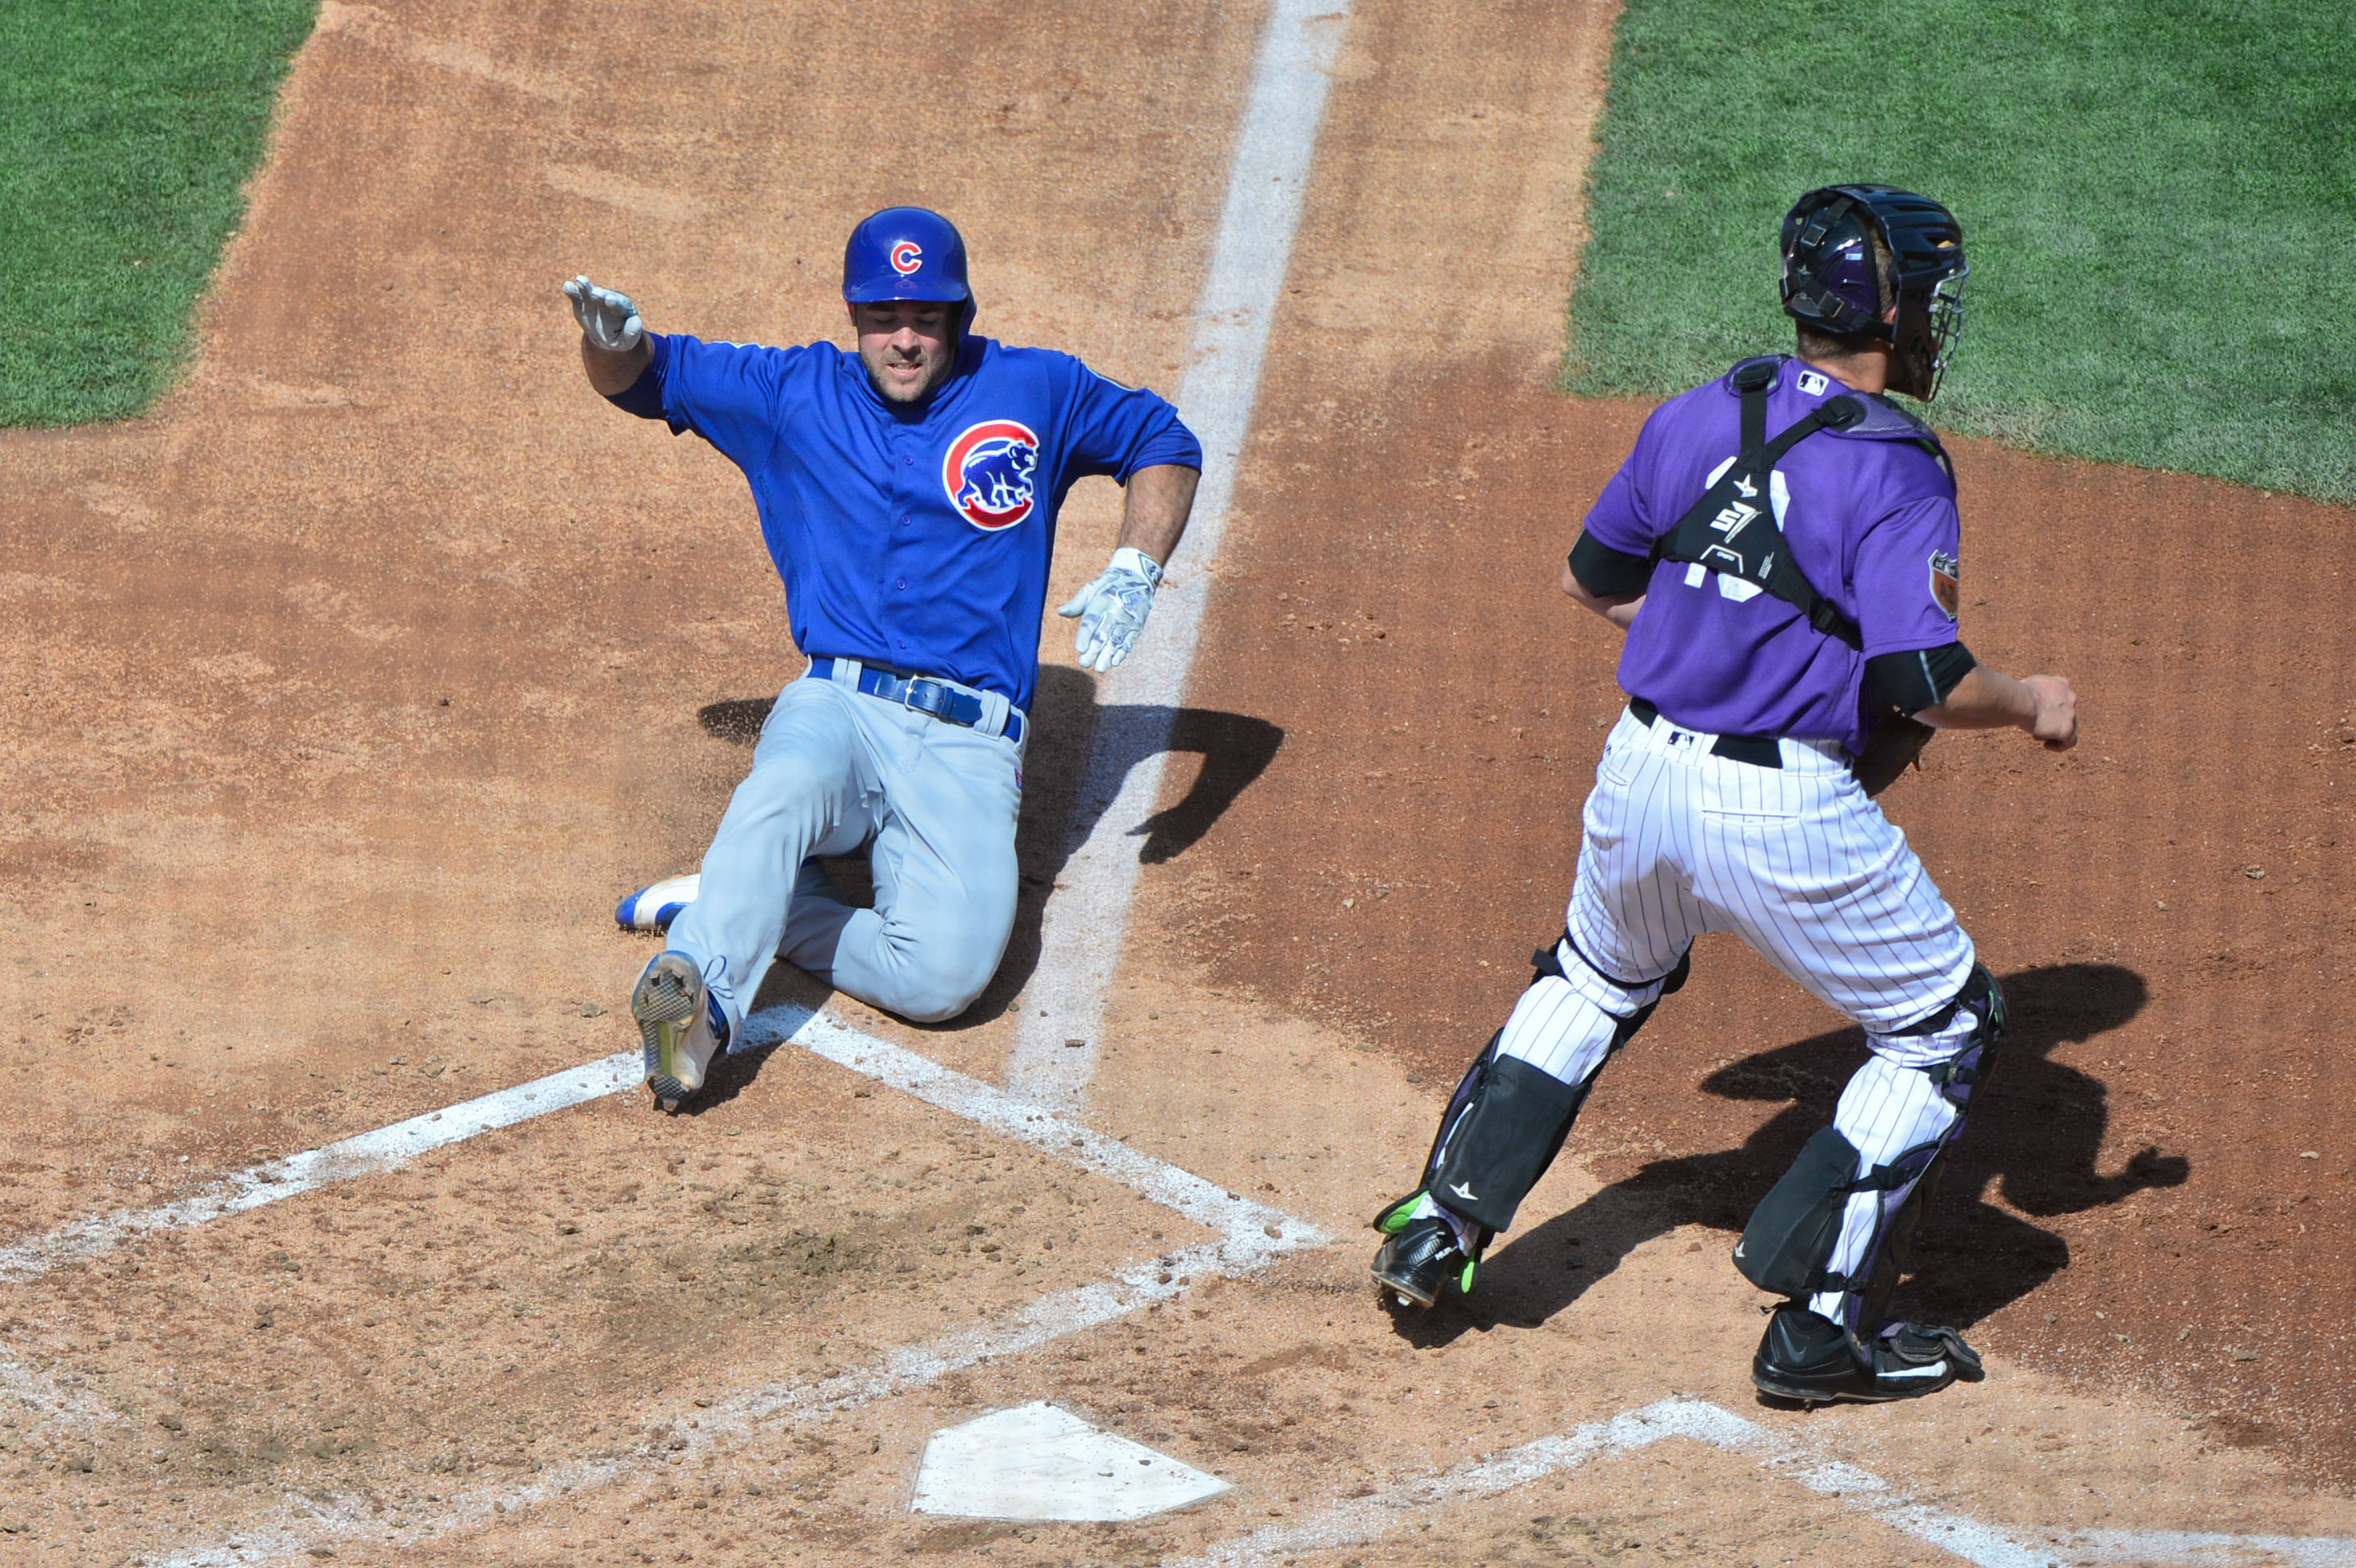 9960850-mlb-spring-training-chicago-cubs-at-colorado-rockies